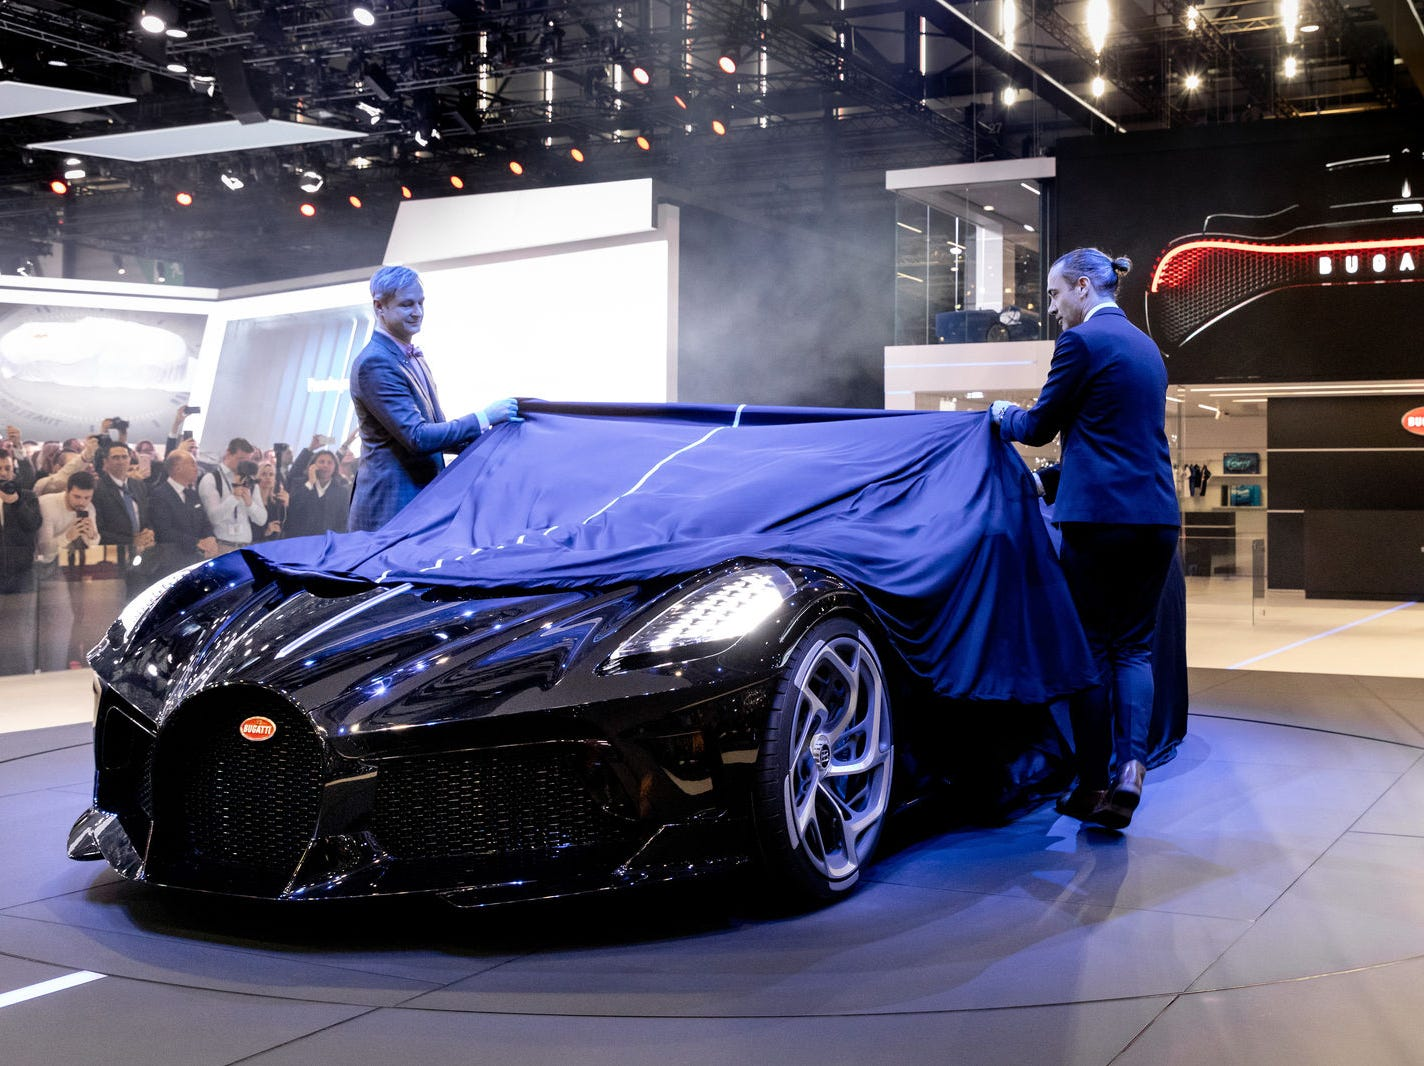 """At the first major international motor show in 2019, Bugatti unveiled the the hyper sports car """"La Voiture Noire."""""""